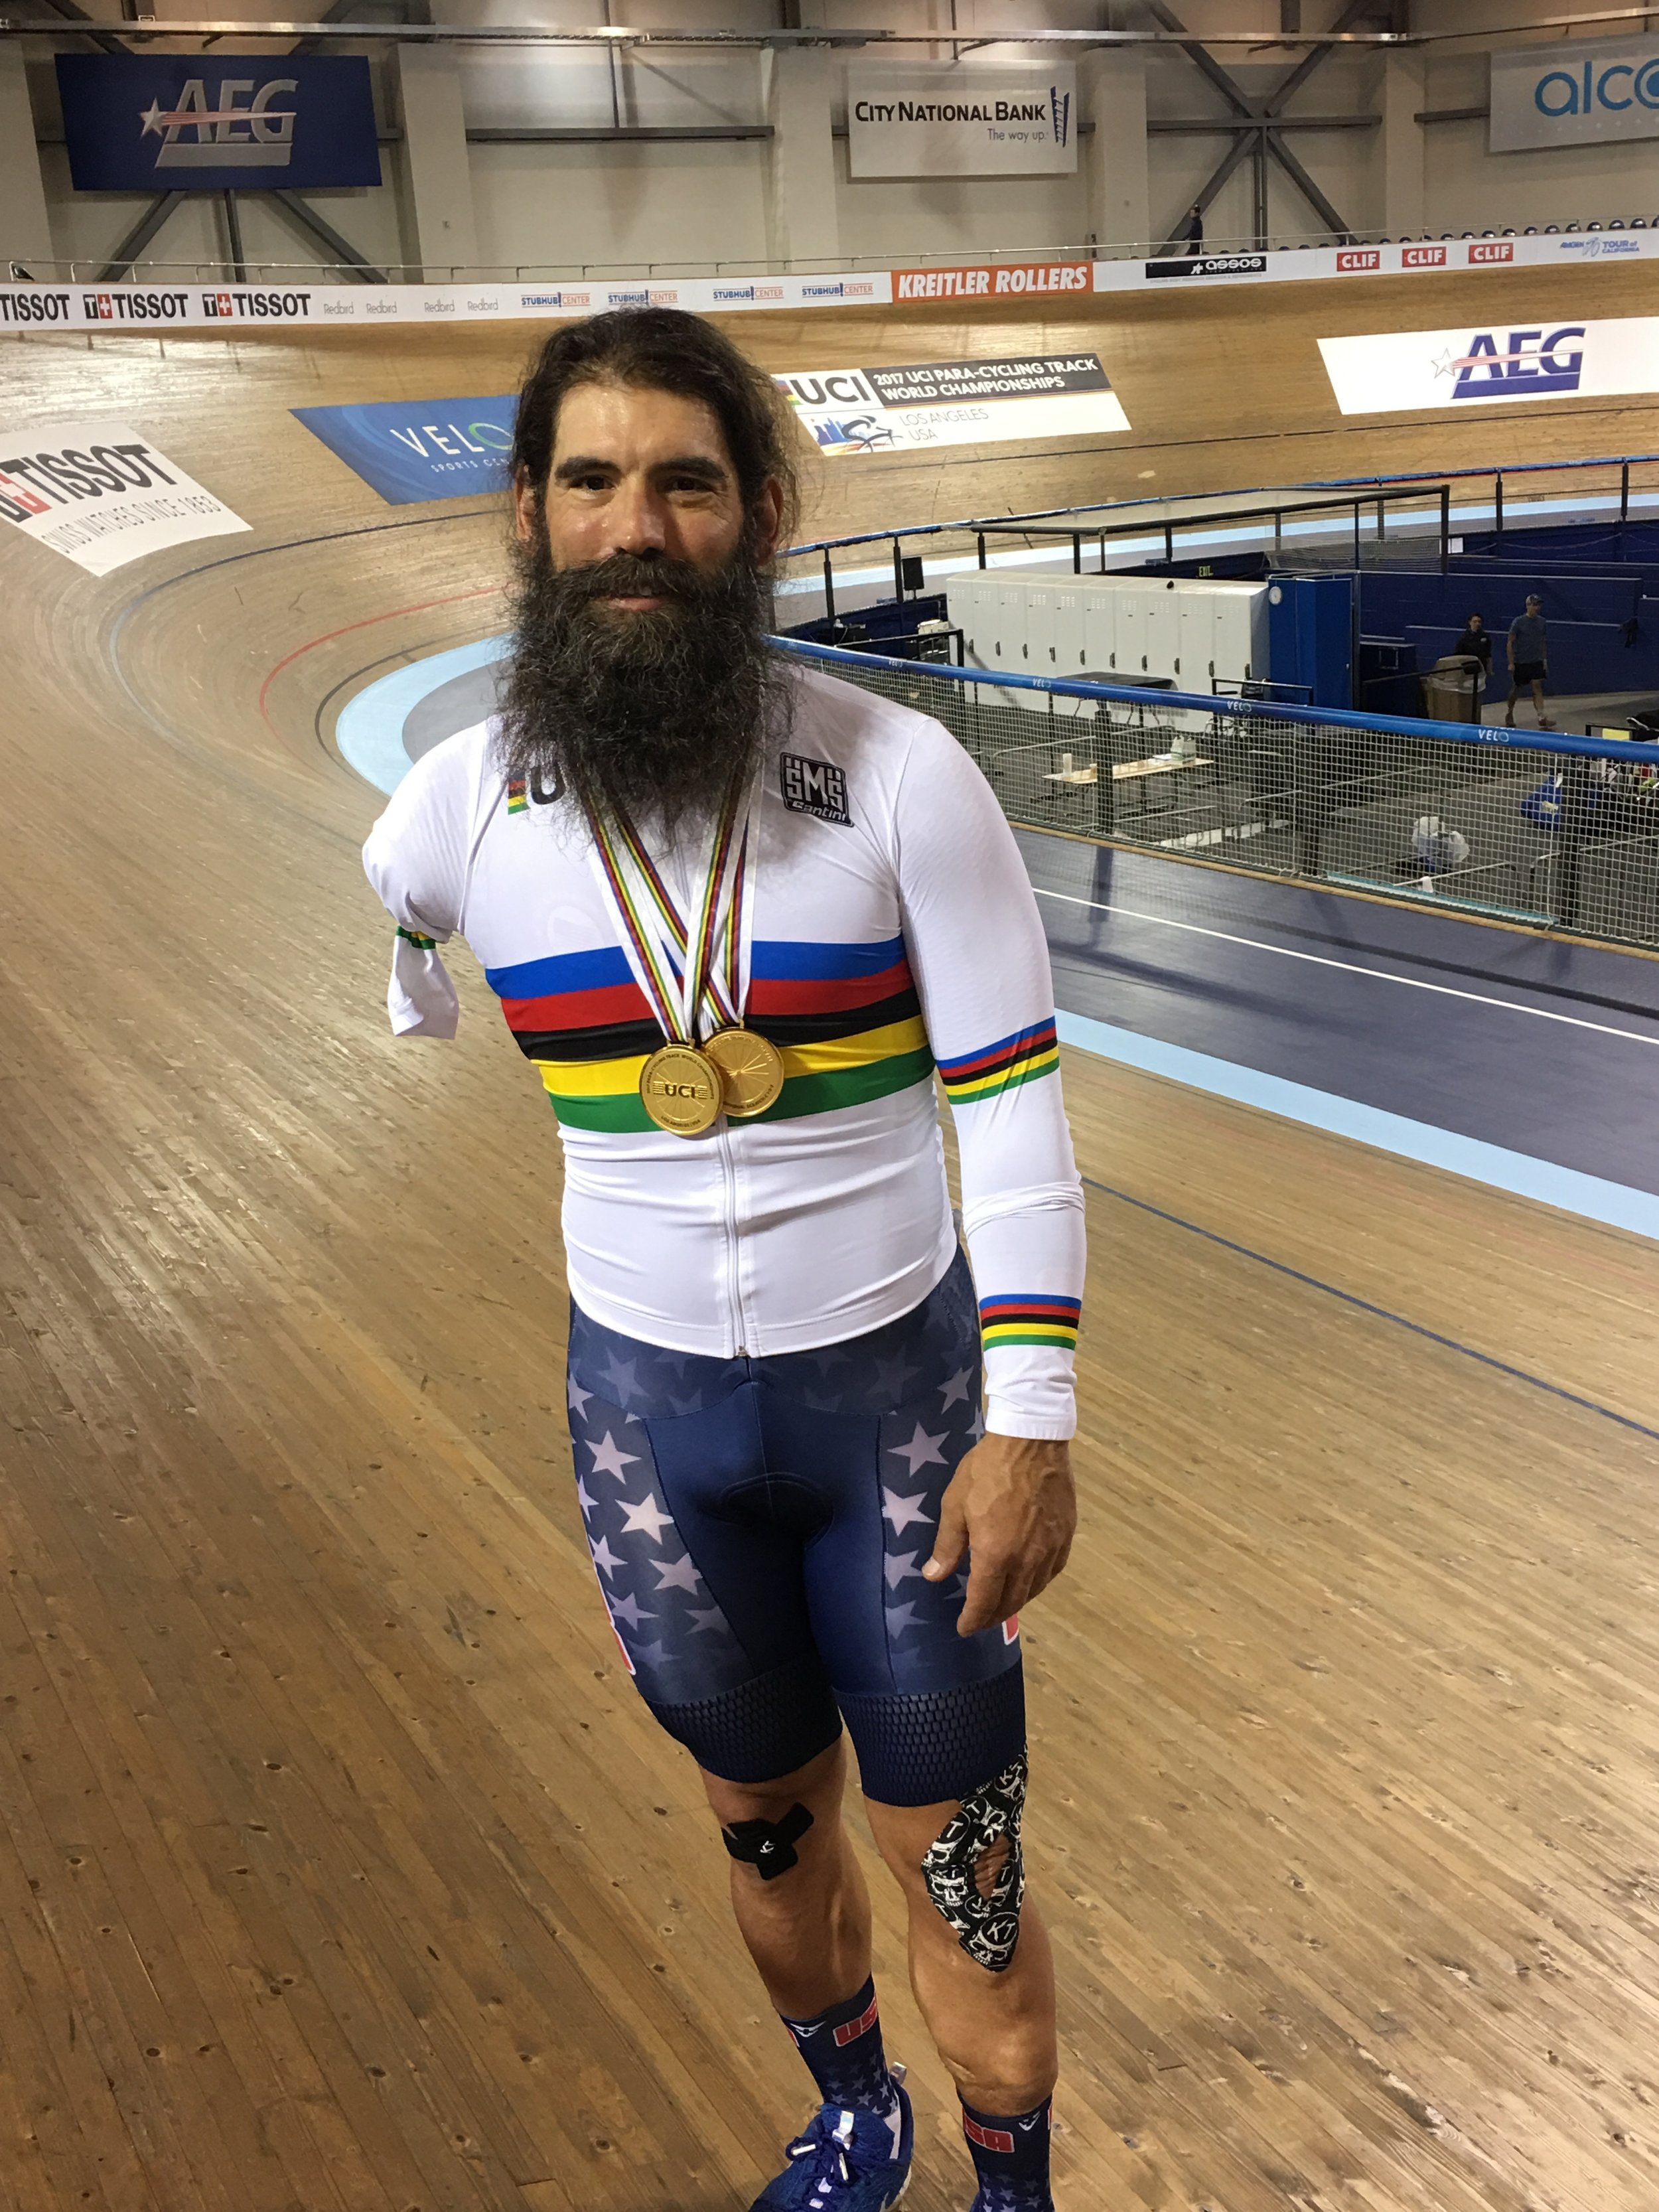 Joe Berenyi pictured after the UCI ParaCycling World Championship at the Velo Sports Center in Carson, CA - March 2017